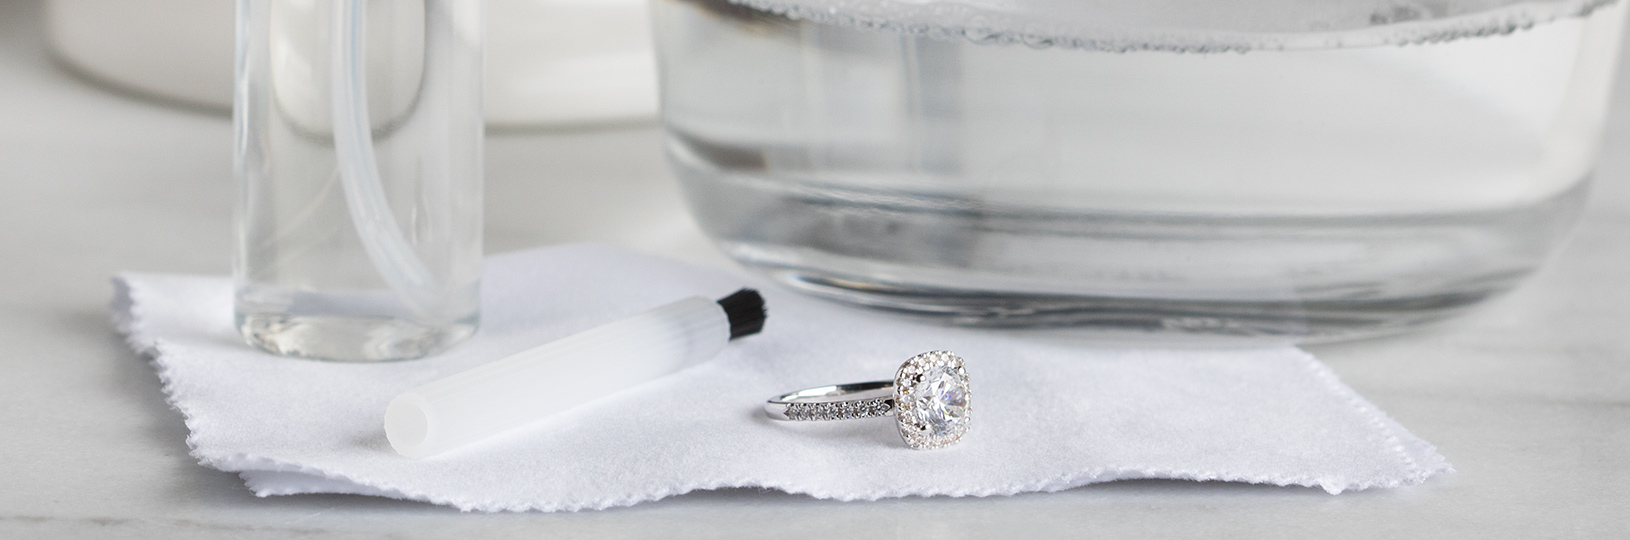 Kit for cleaning your engagement ring